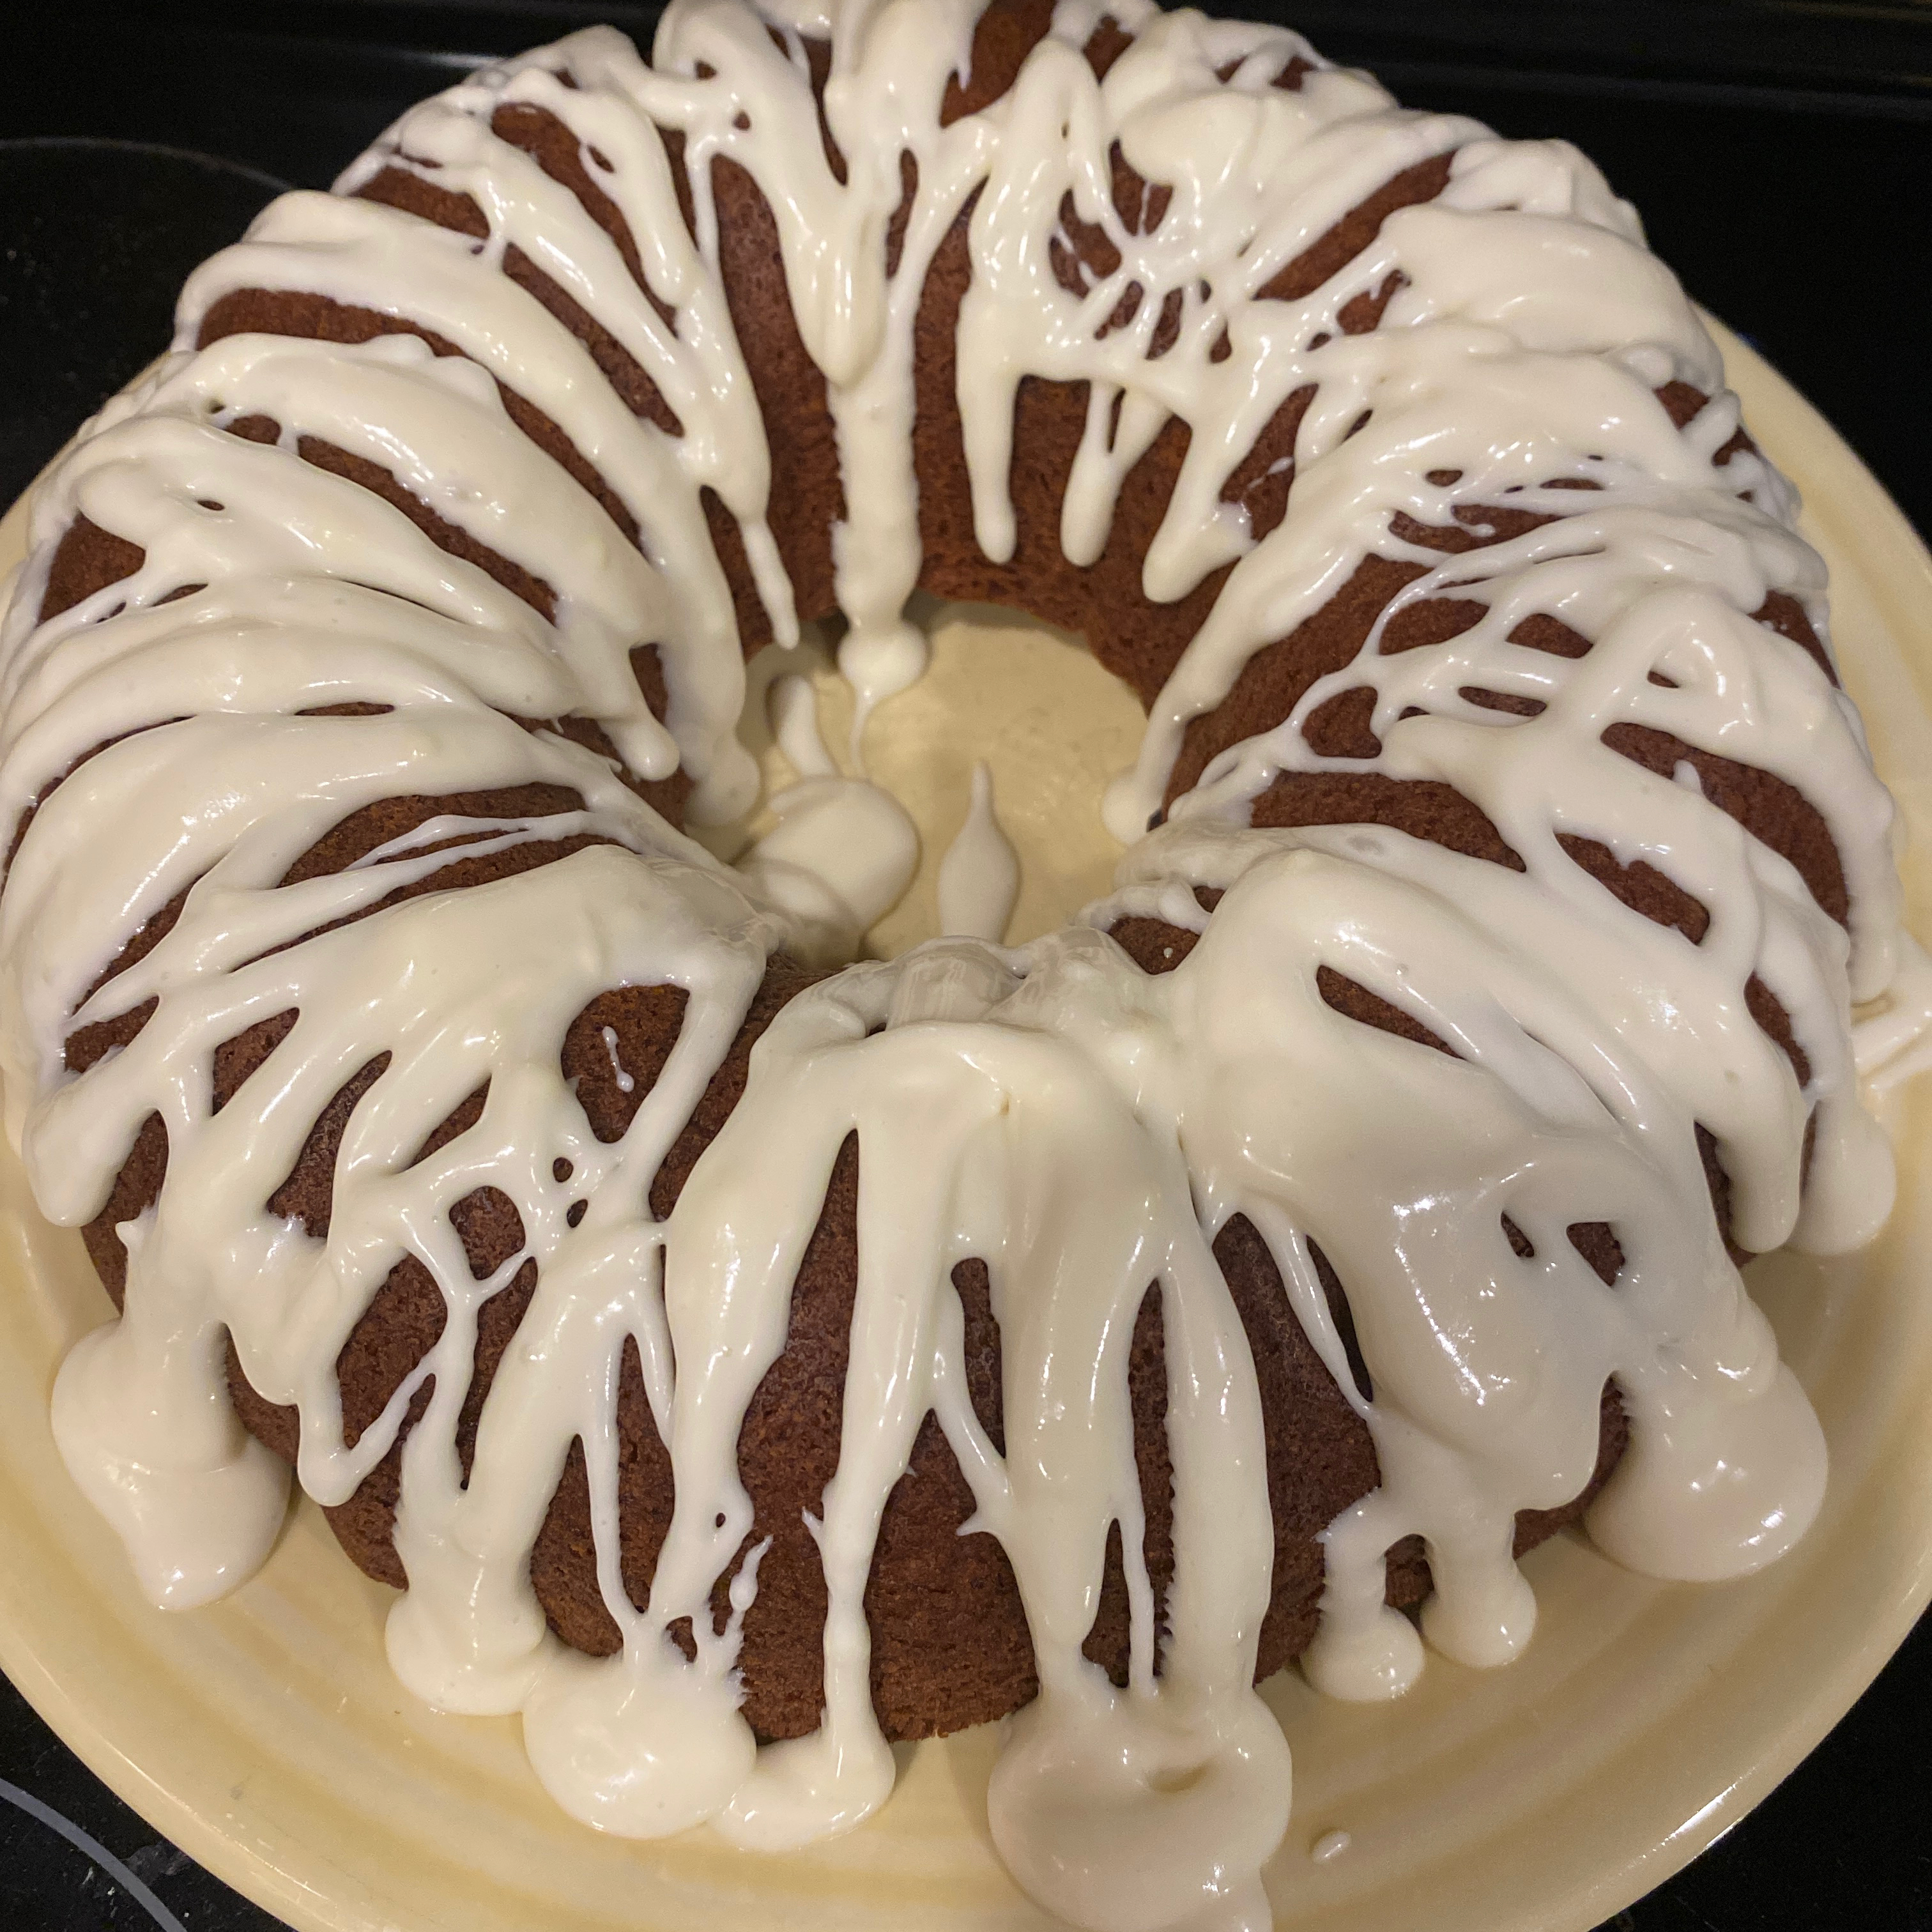 Carrot Cake with Cream Cheese Icing from Egg Farmers of Ontario